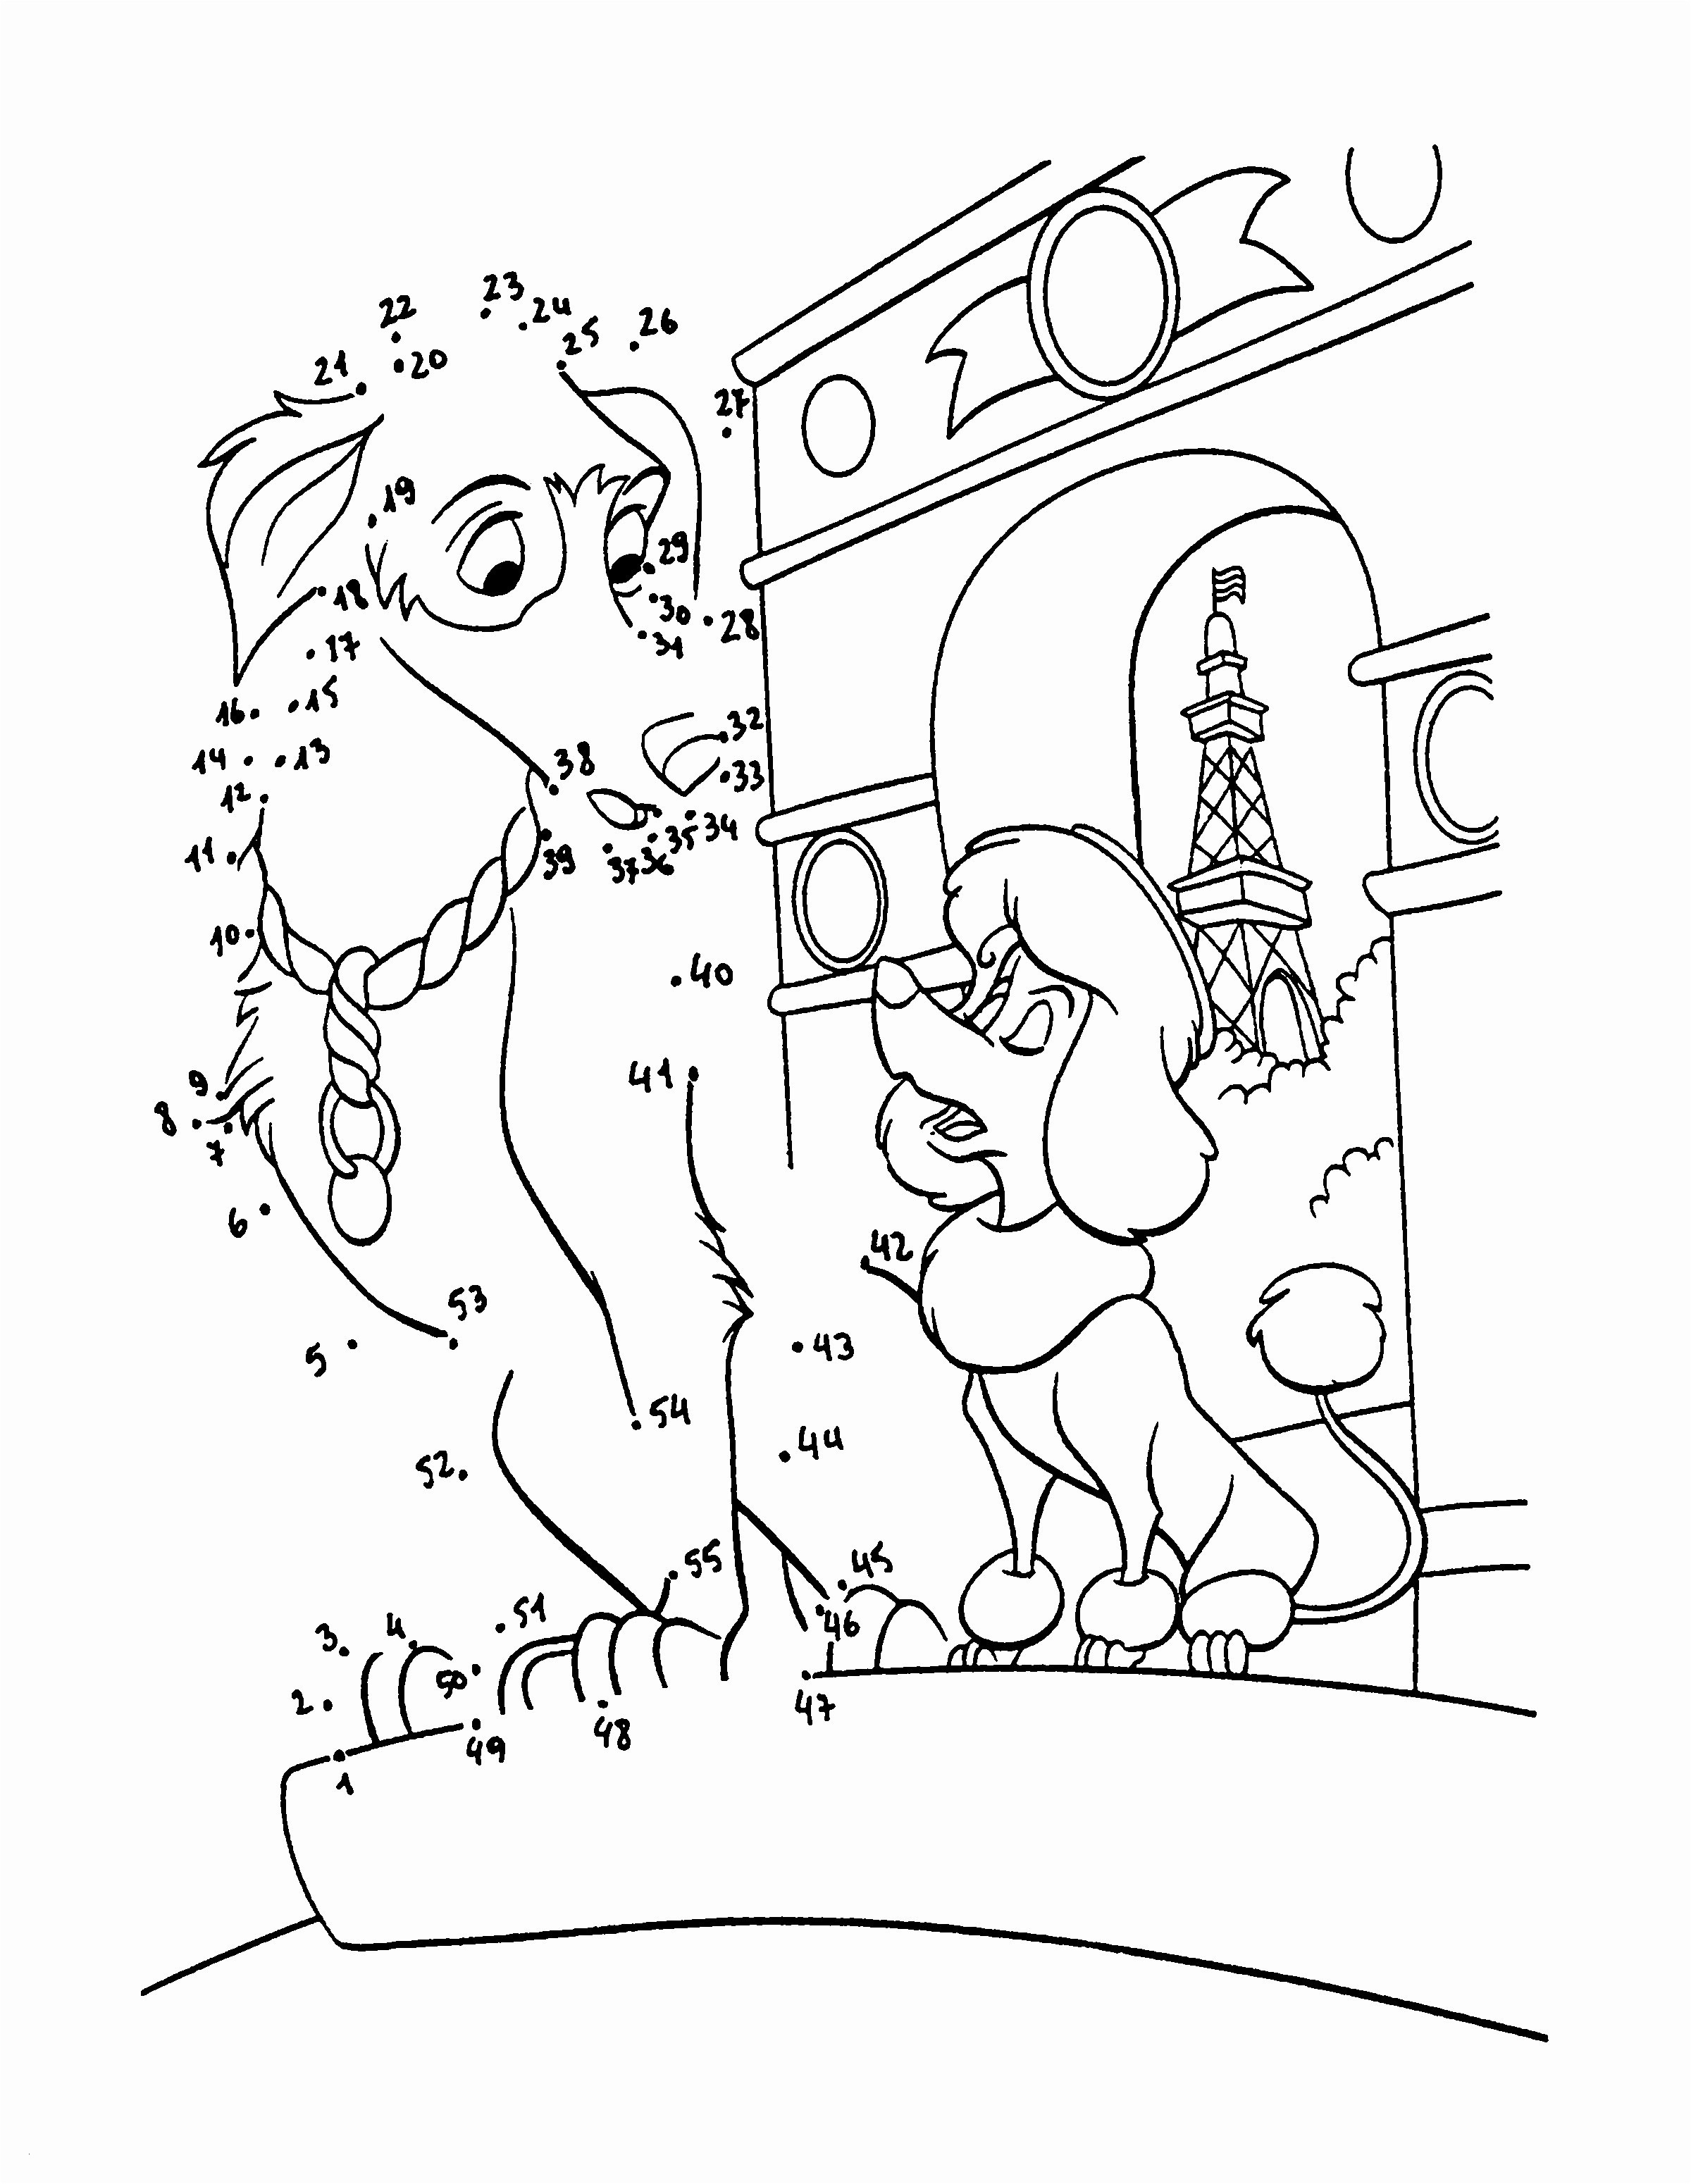 zacchaeus coloring pages for preschoolers Download-Fig Coloring Page Beautiful Zacchaeus Coloring Pages for Preschoolers Letramac 15-e